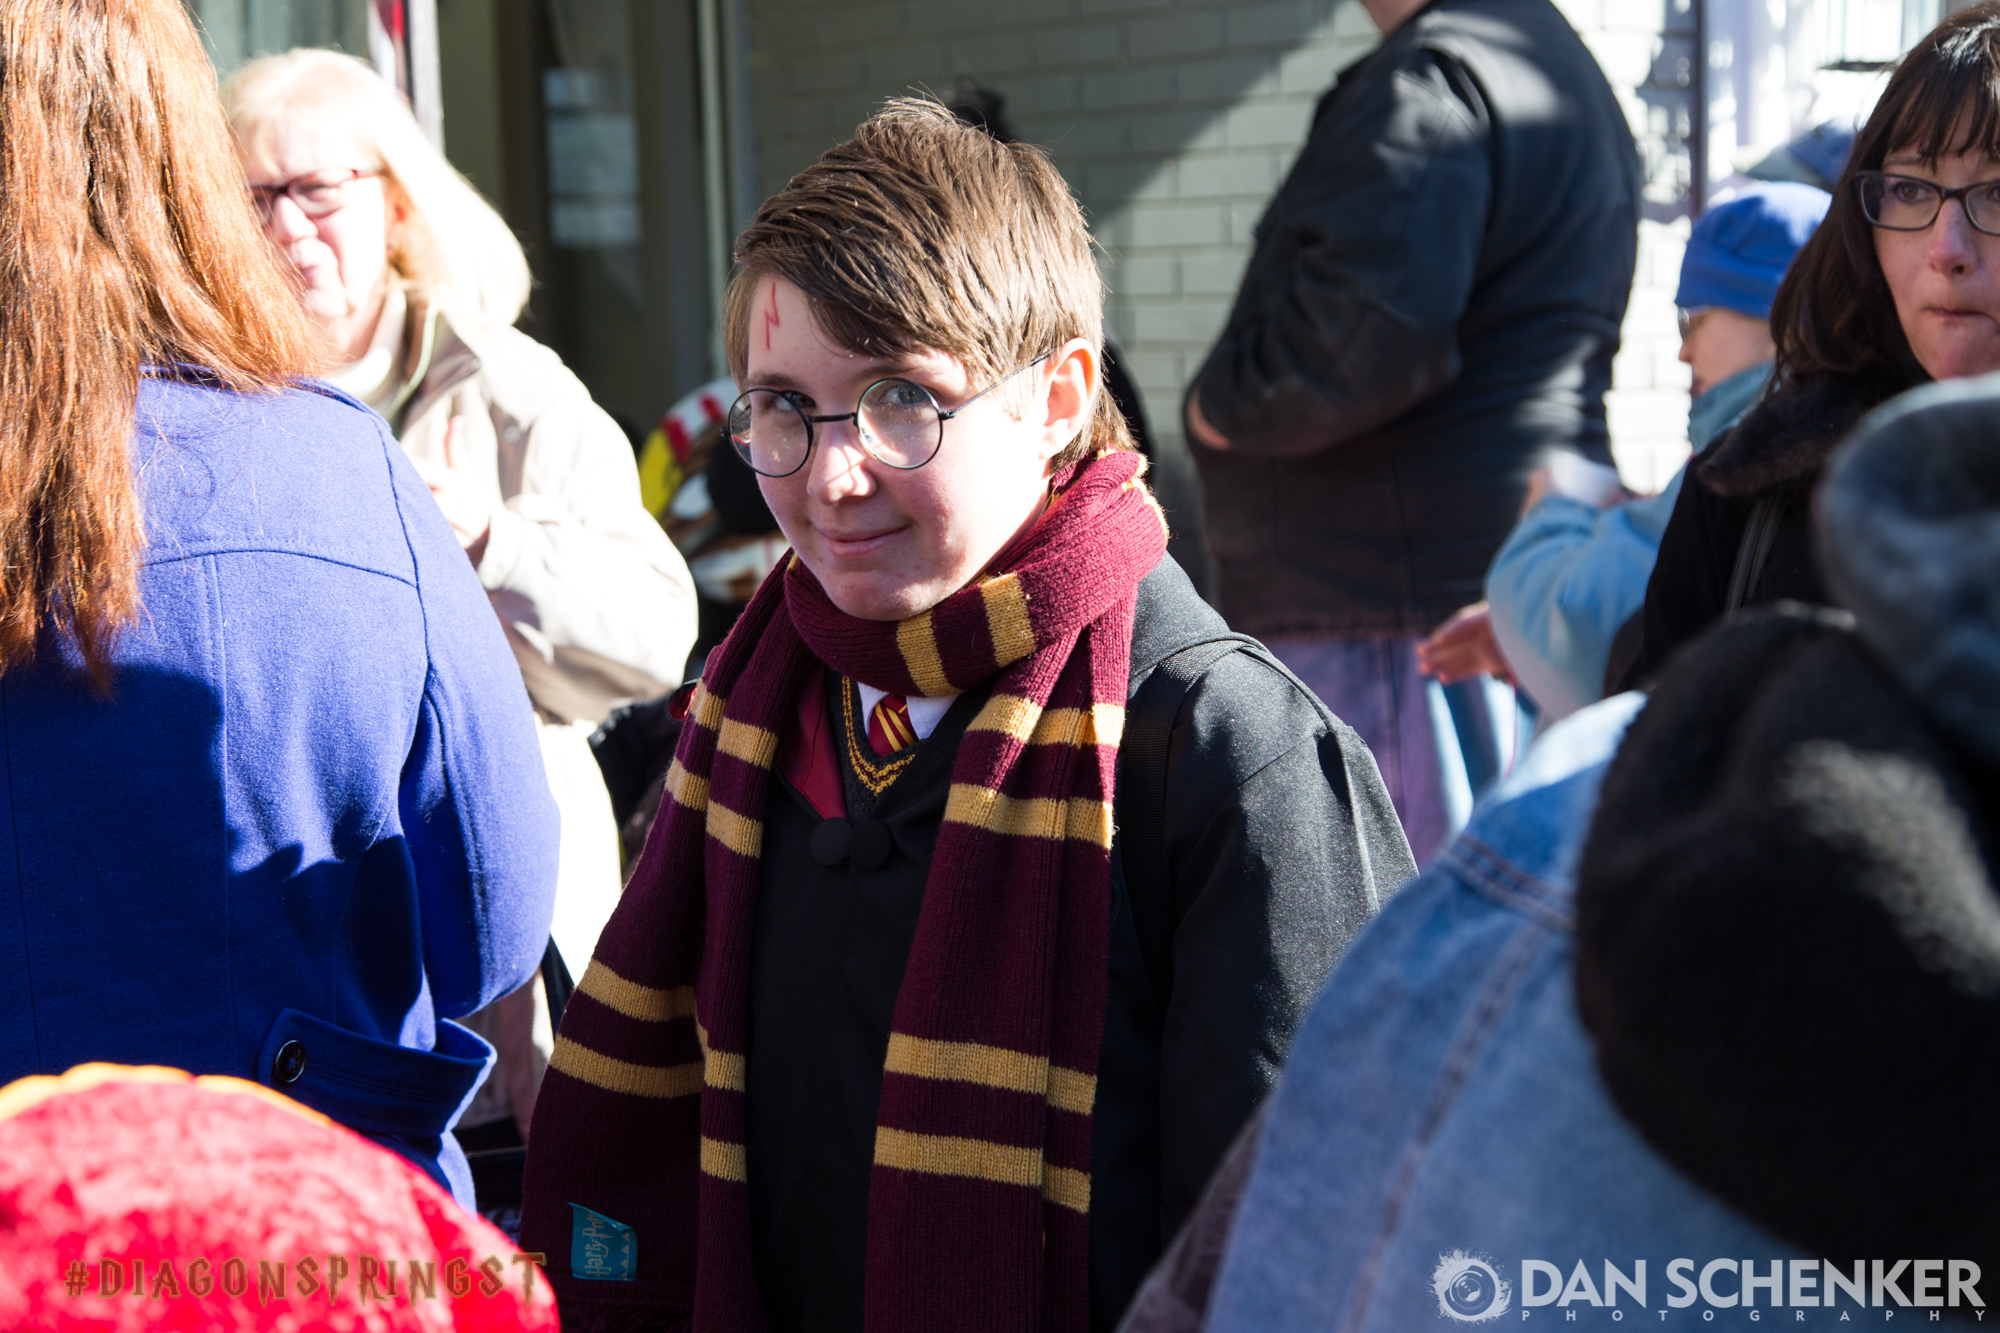 """I didn't see any evidence that this wasn't the actual Harry Potter — not Daniel Radcliffe, who played the character in the movies, but the real live """"boy who lived."""" Great cosplay!👏"""